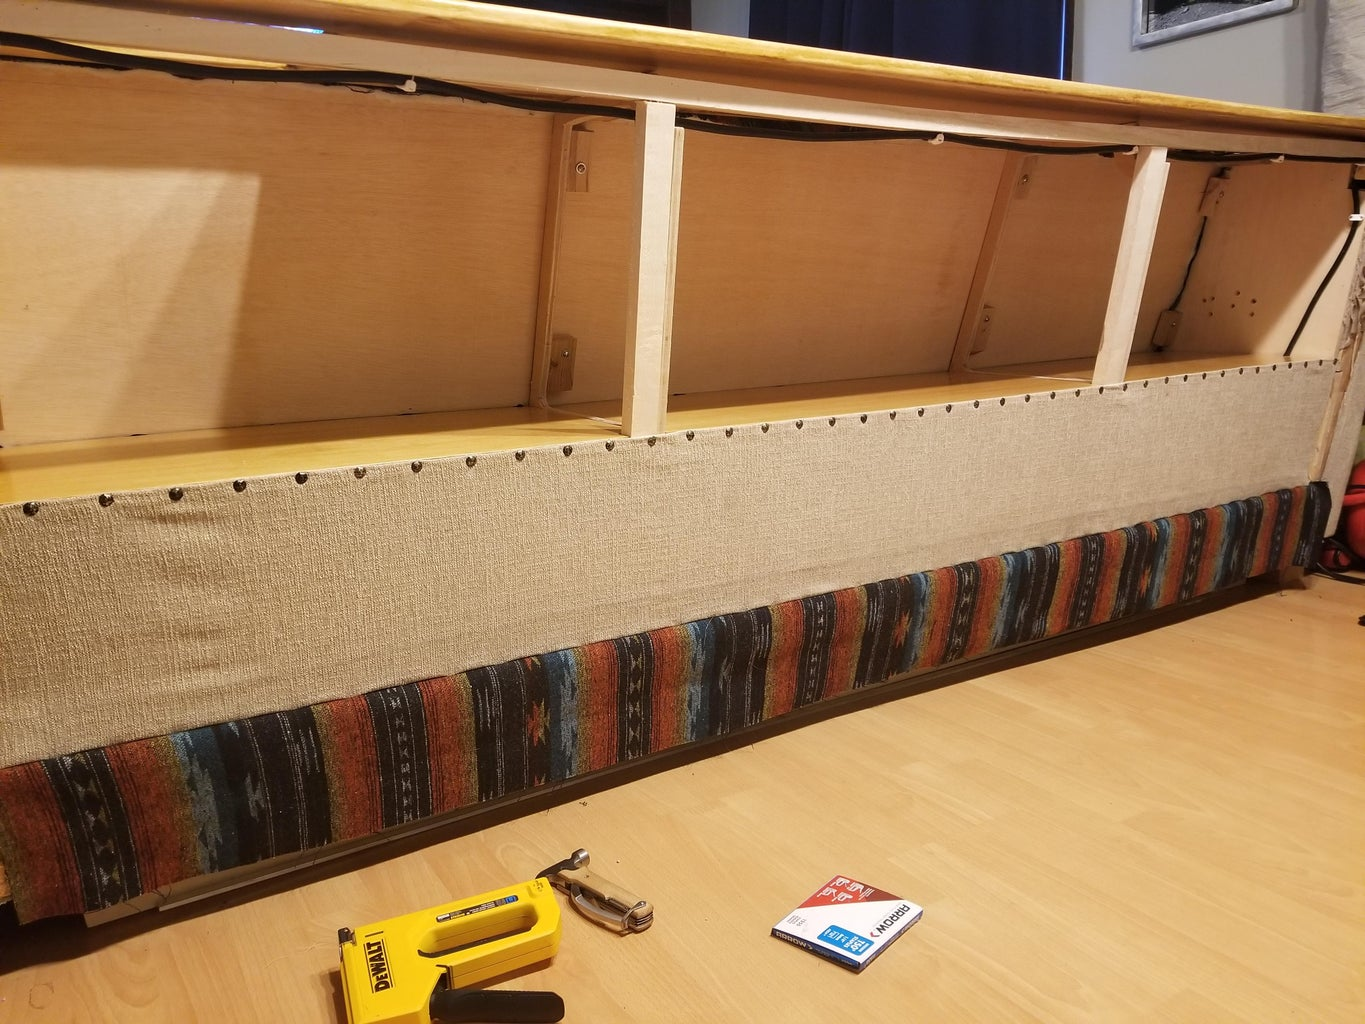 Finishing Up the Back - Floor Boards and Fabric